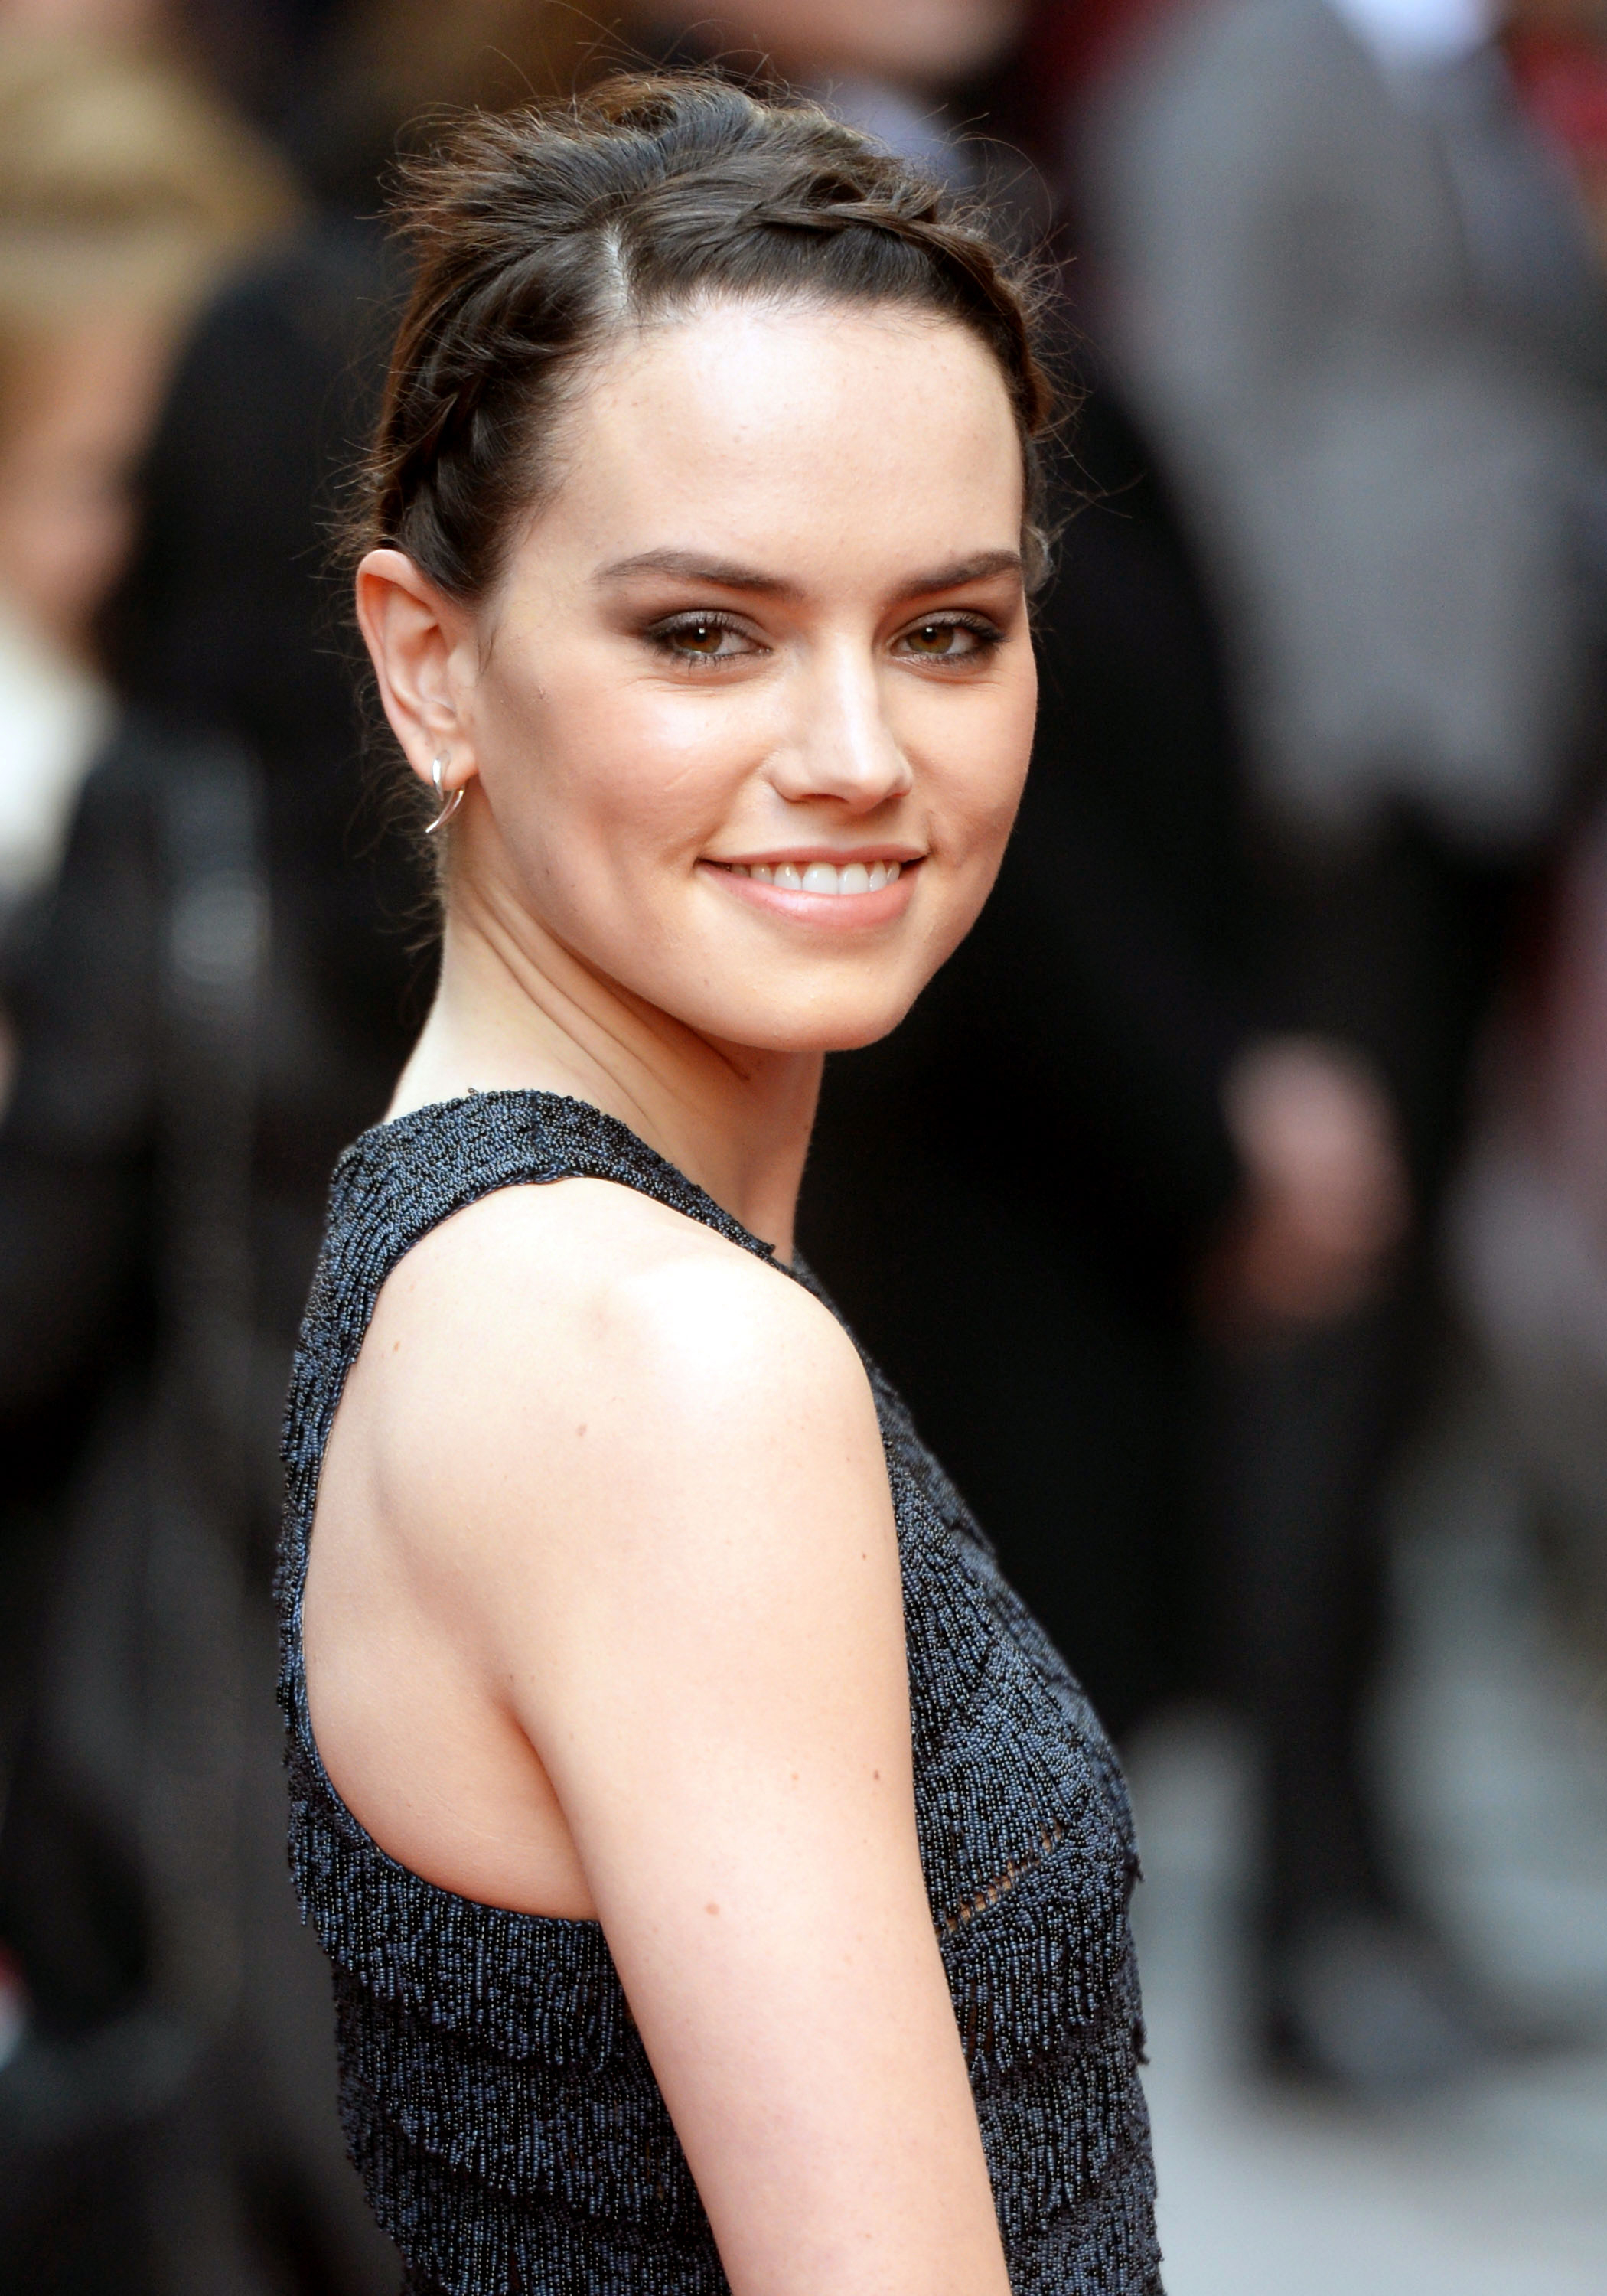 Communication on this topic: Anuya Bhagvath, daisy-ridley/